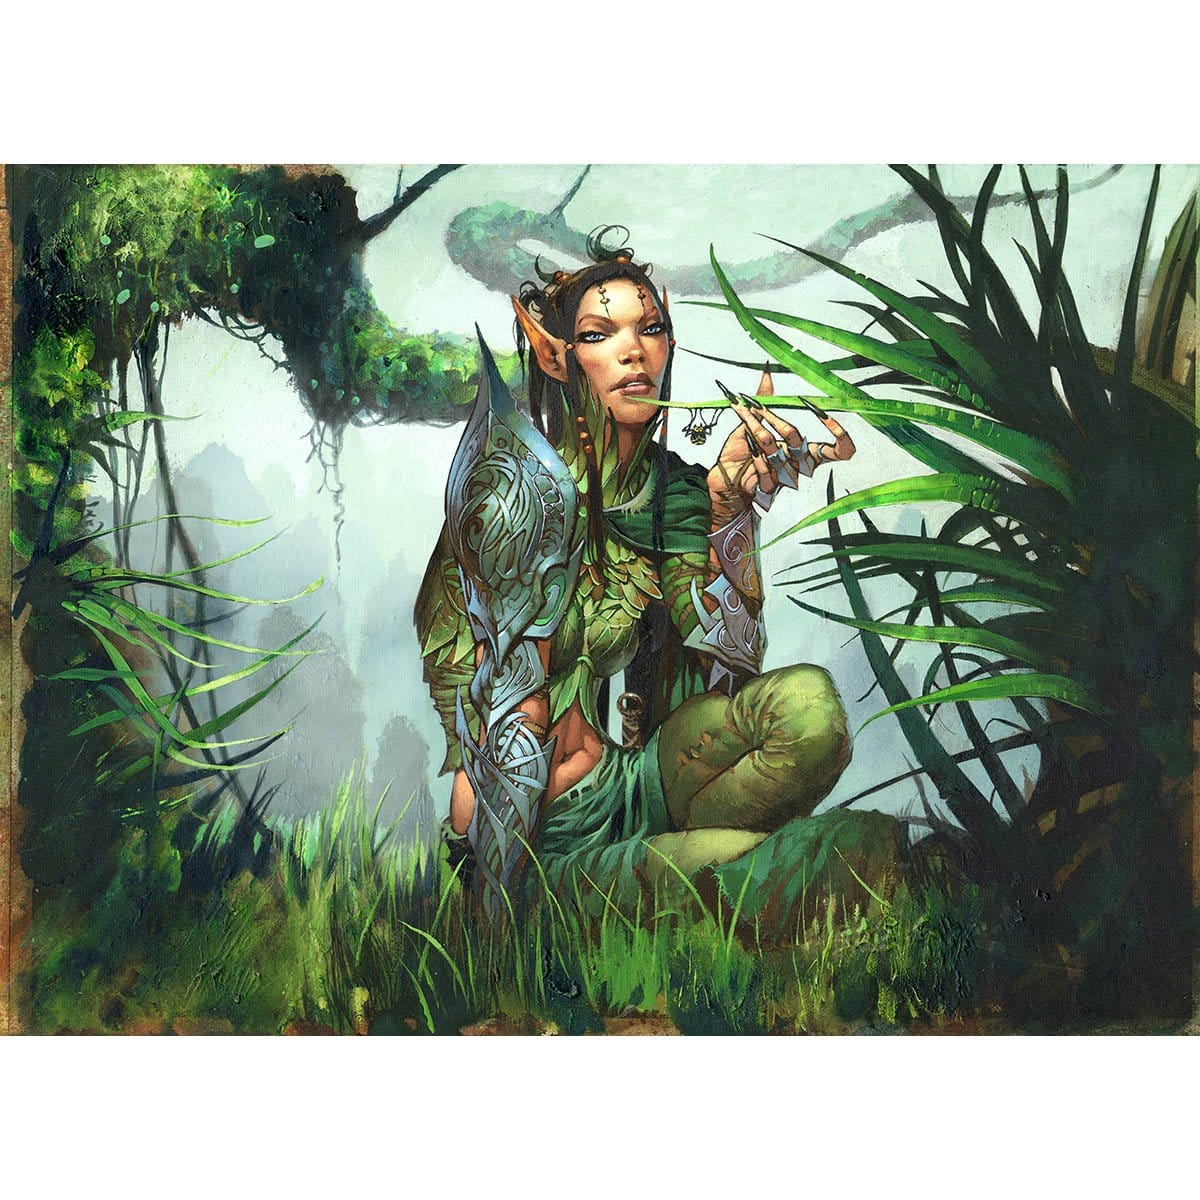 Druid of the Anima Print - Print - Original Magic Art - Accessories for Magic the Gathering and other card games